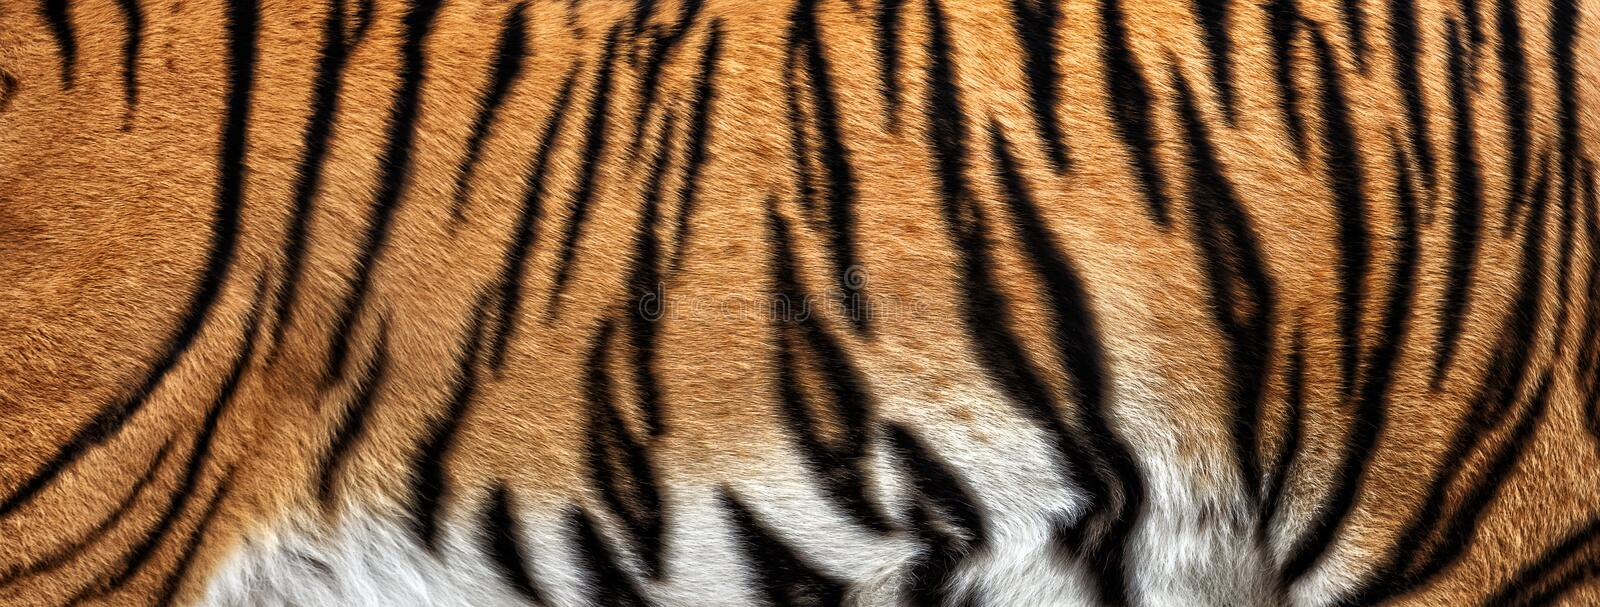 texture of real tiger skin royalty free stock photography